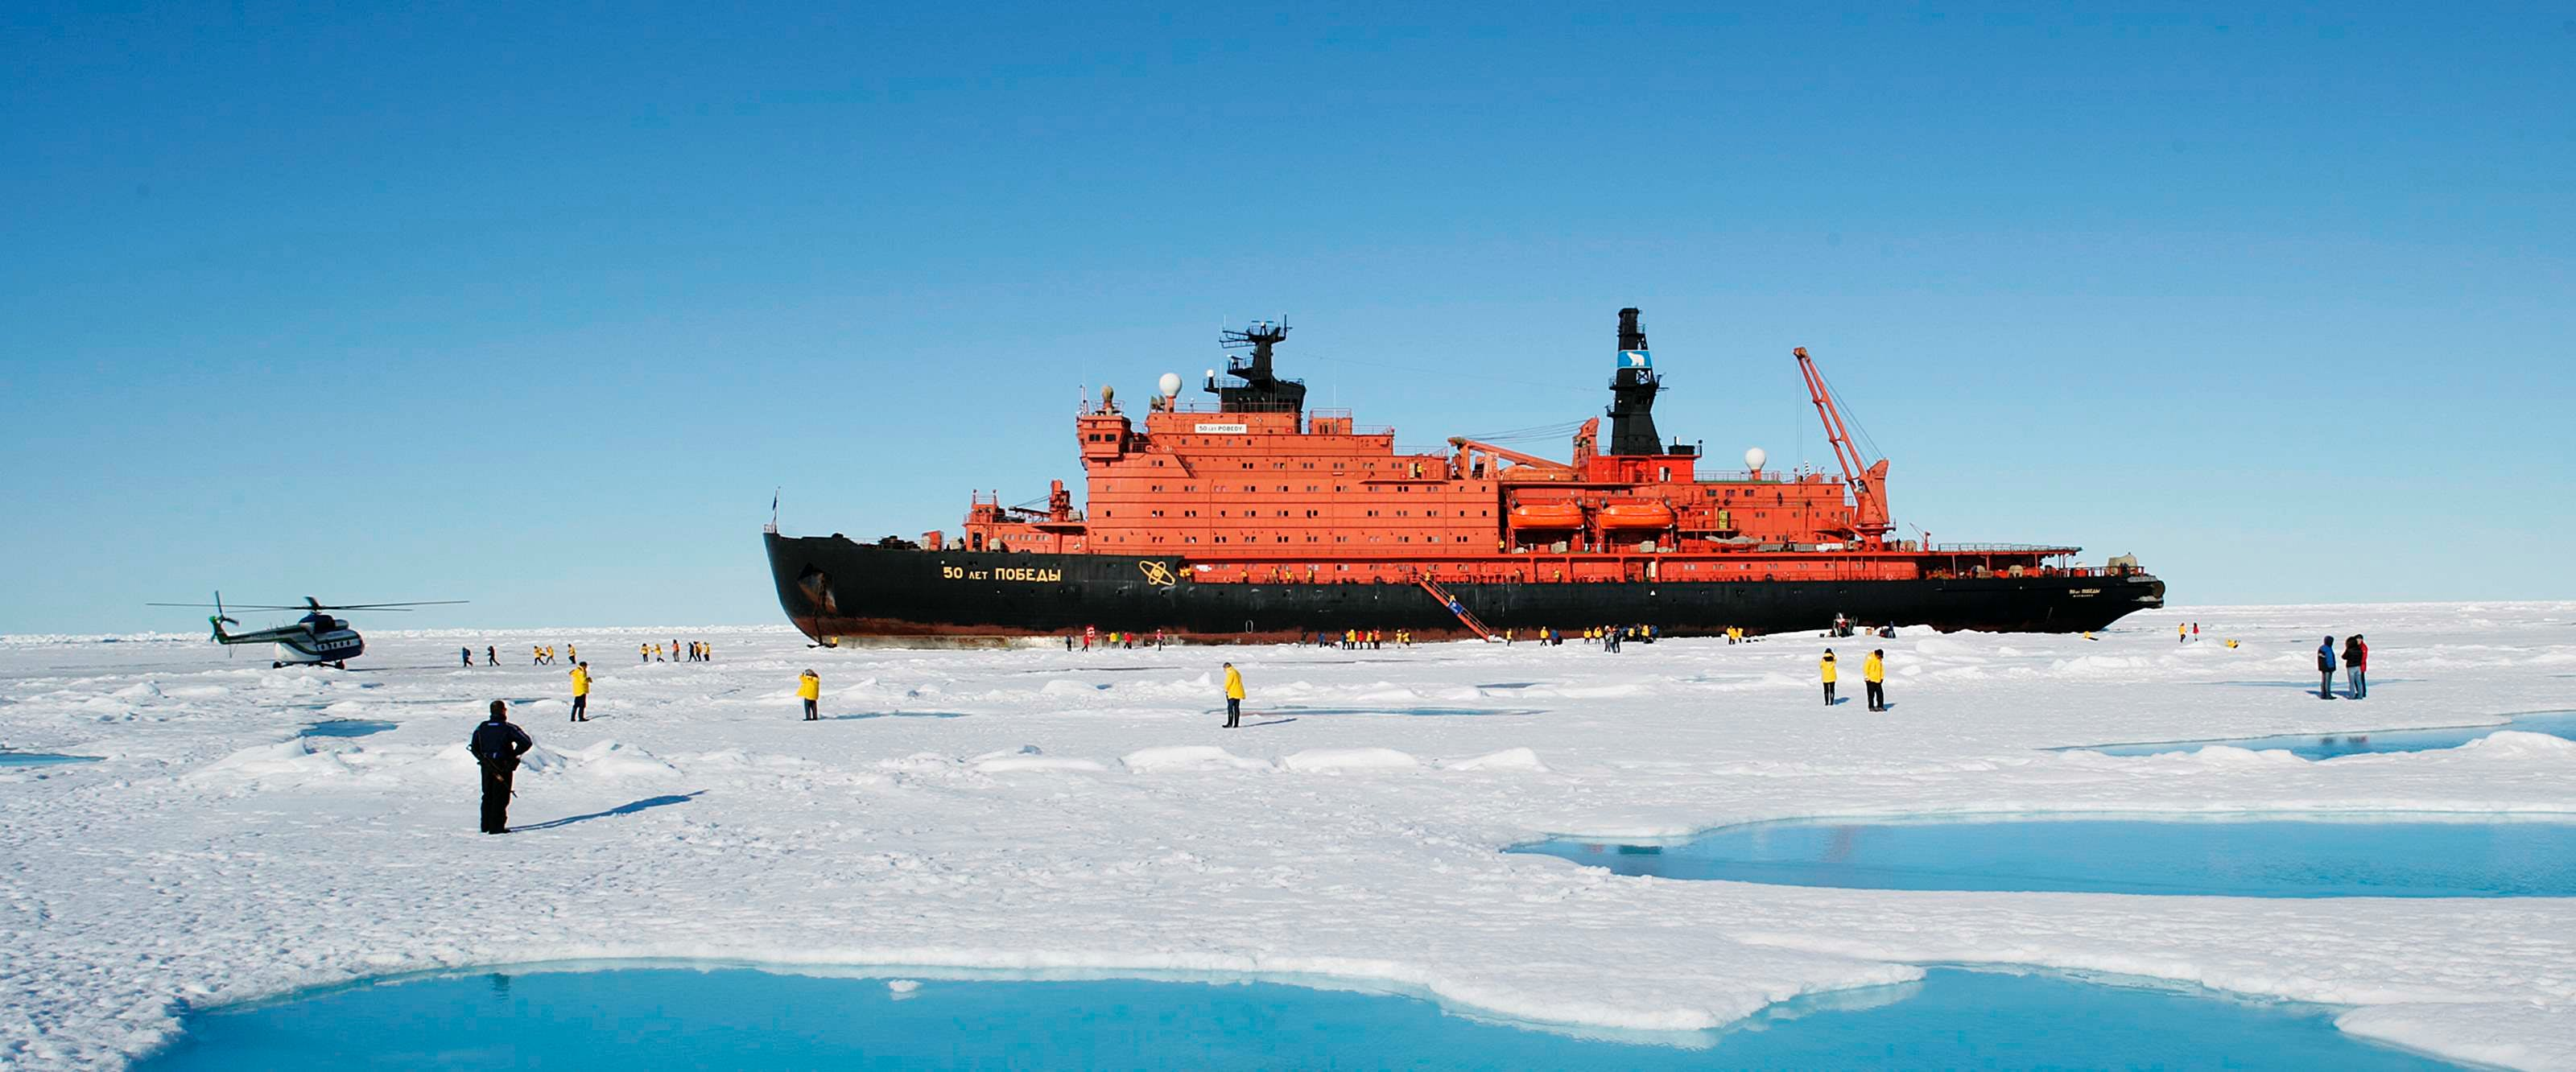 50 Years of Victory includes a host of polar exploration tools and technology.